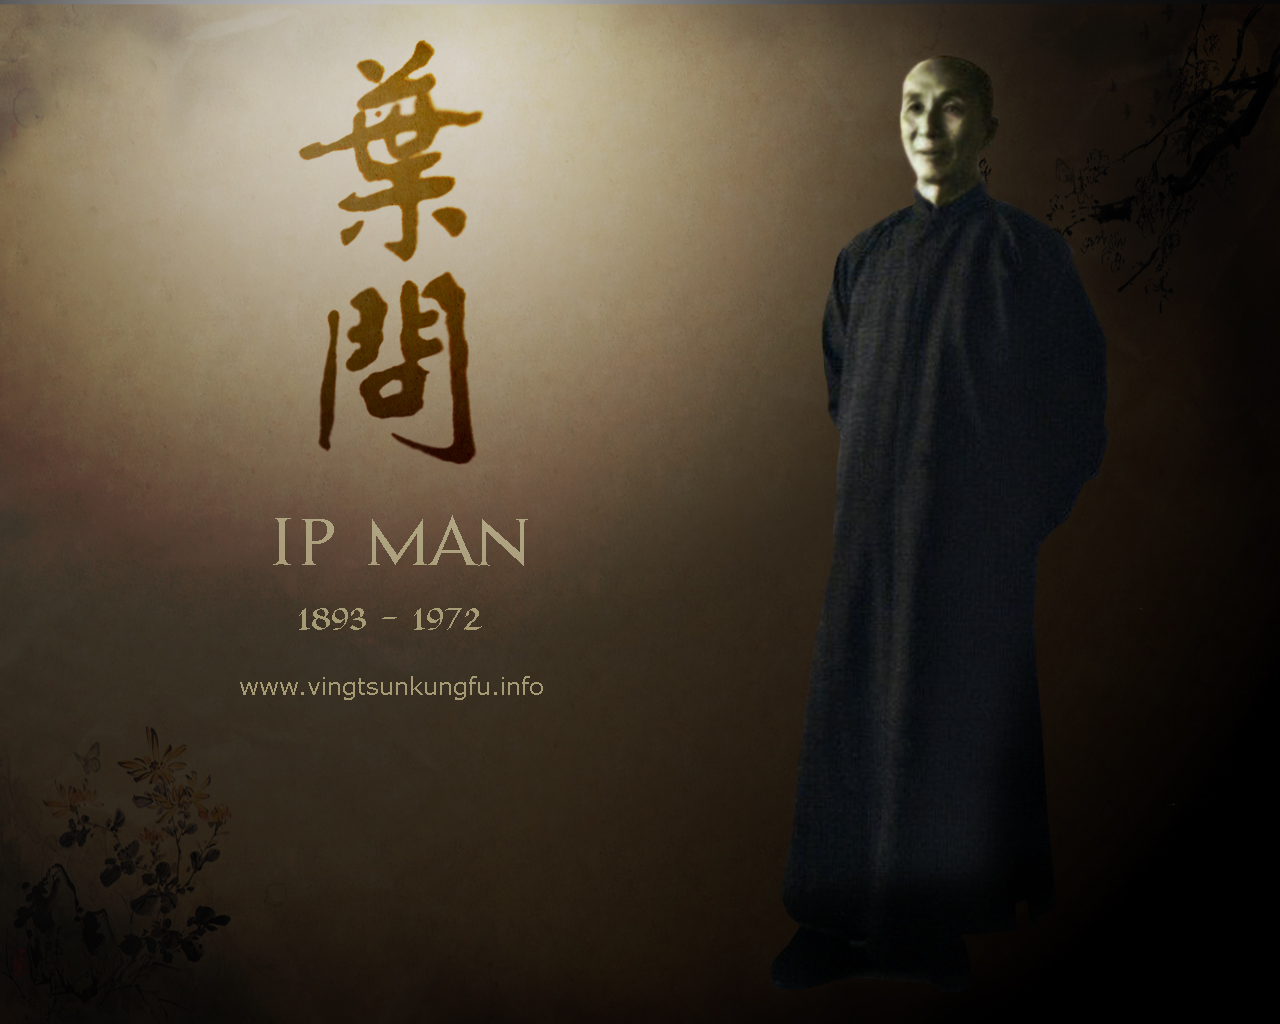 download Desktops 1280 x 1024 Ip Man Wallpaper [1280x1024 1280x1024